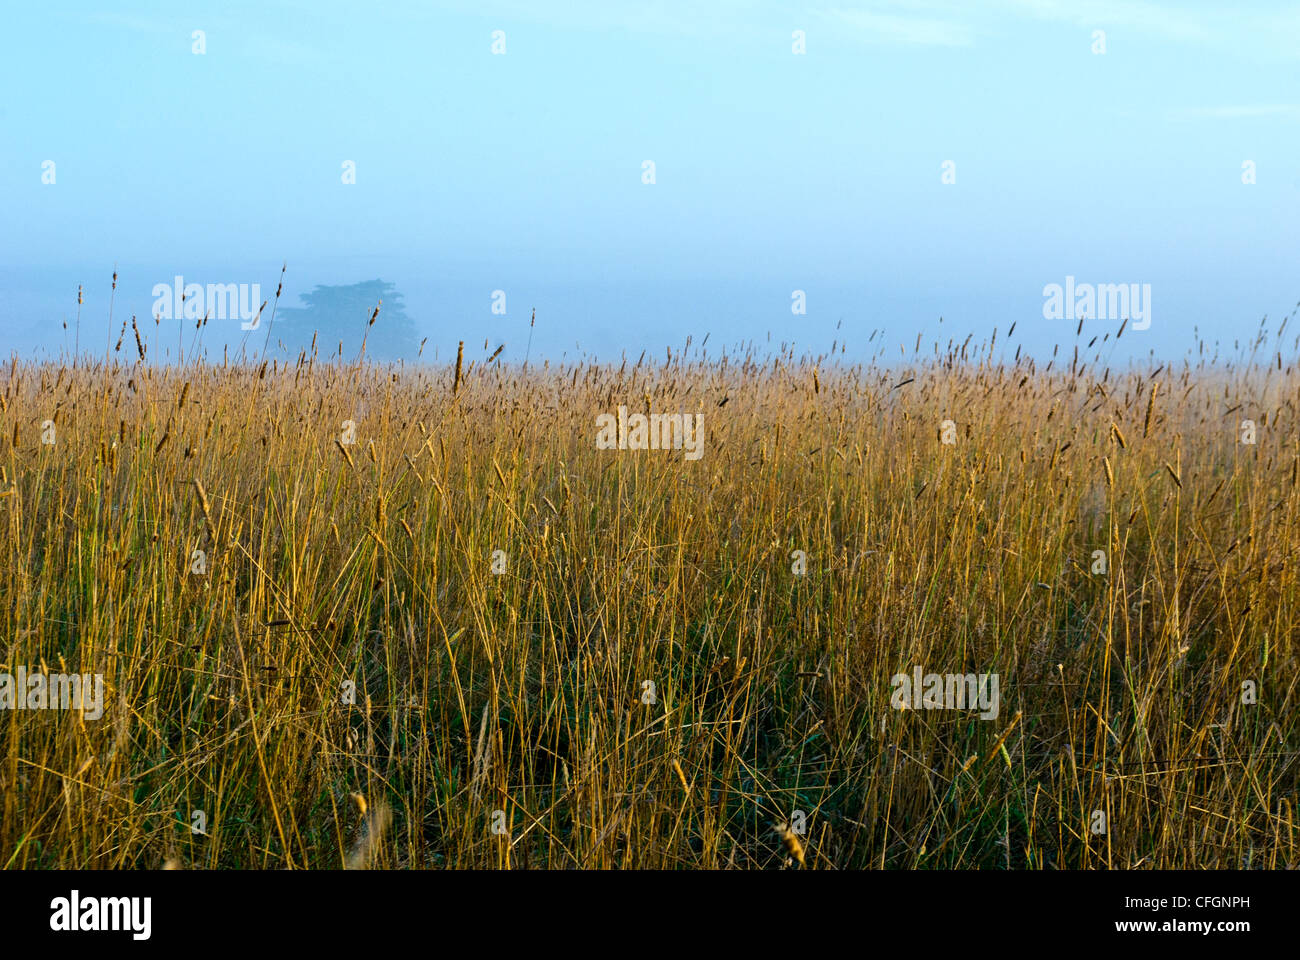 Dawn rises and dissipates winter fog over a farm field of dry wheat. - Stock Image